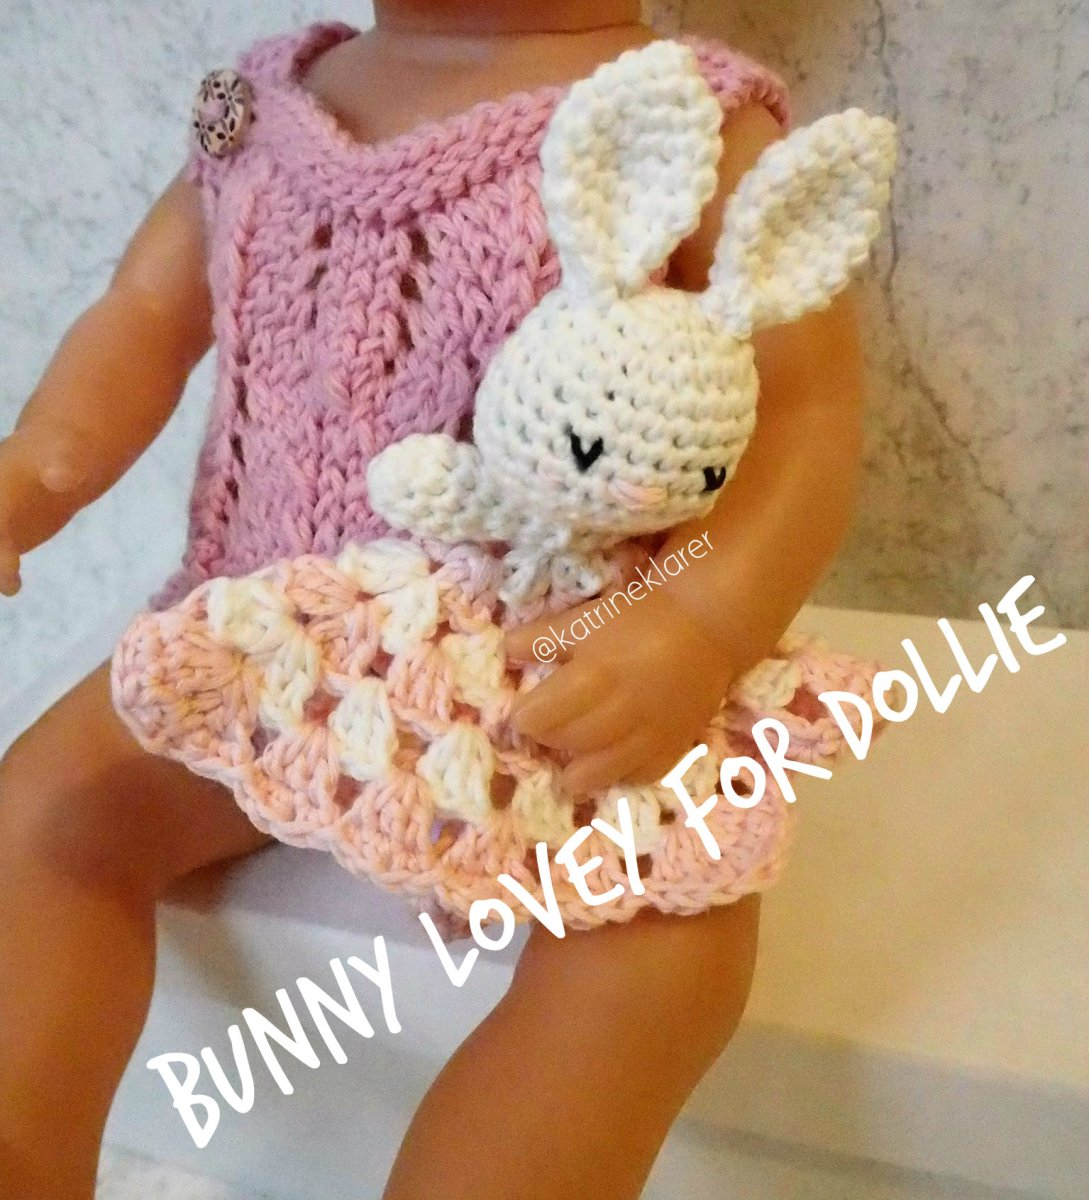 Bunny lovey for the dollie